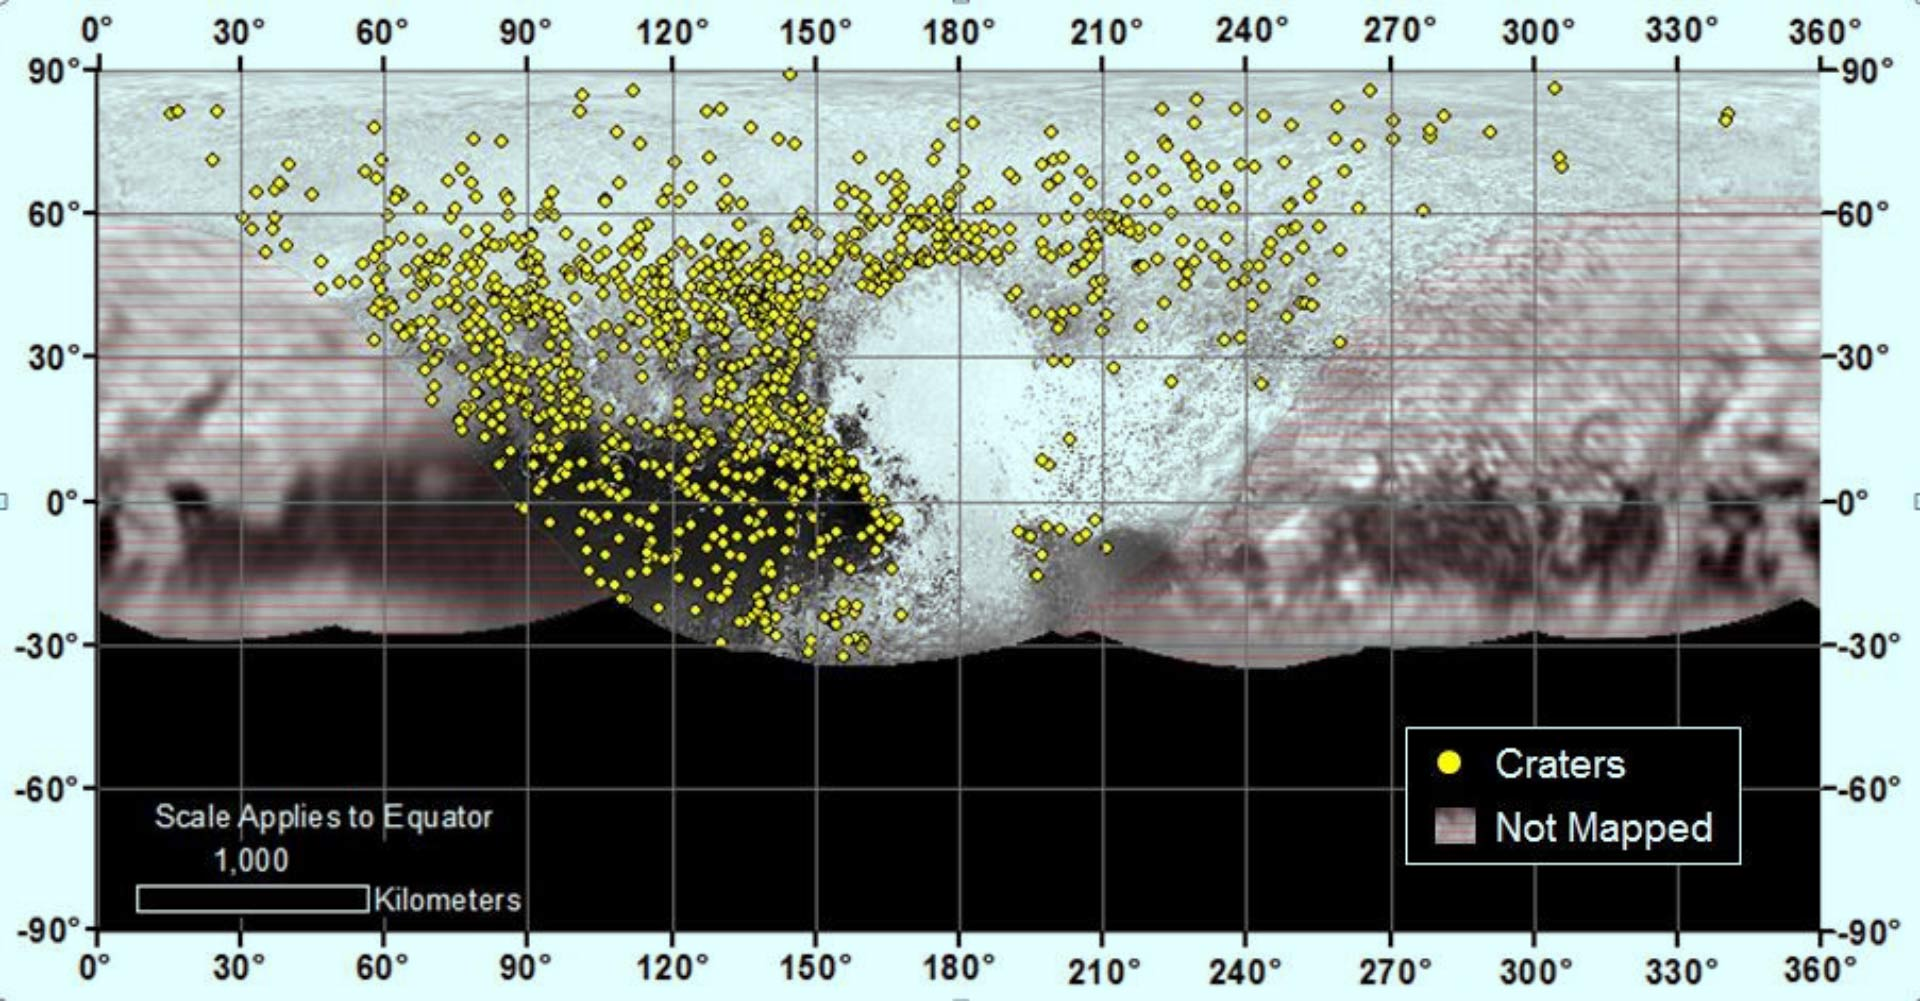 Map of Pluto's Craters Reveals Dwarf Planet's Turbulent Past ... Map Of Terraformed Pluto on atmosphere on pluto, illustrations of pluto, journey to pluto, voyager pluto, mission to pluto, who discovered pluto, color of pluto, viva la pluto, god of pluto, google pluto, sun pluto, dwarf planet poor pluto, size of pluto, hydra moon of pluto, temperature on pluto, space pluto, symbol of pluto, everything about pluto, information about pluto, the word pluto,